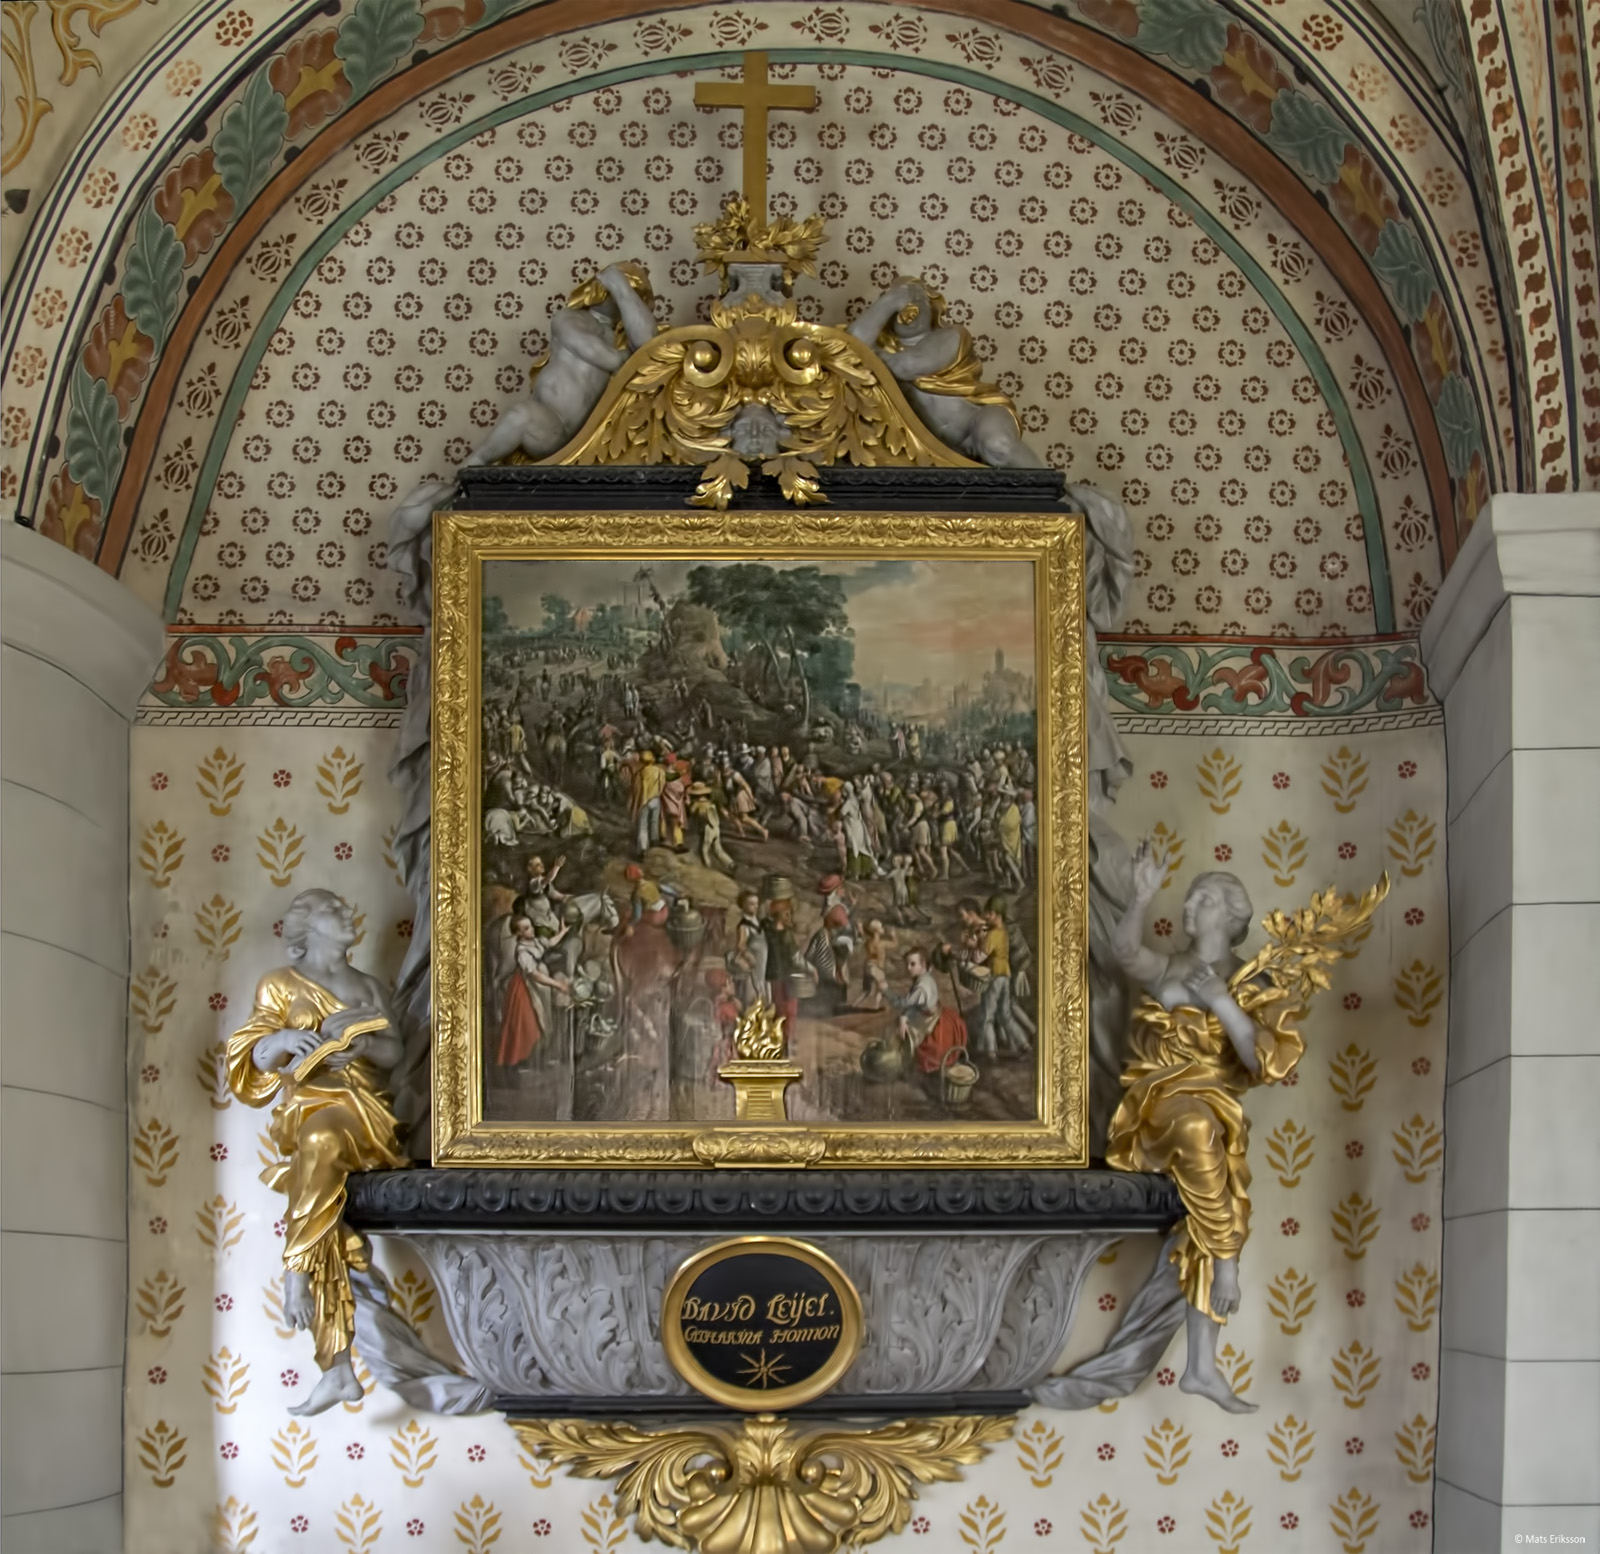 PaintingAlvkarlebyChurch